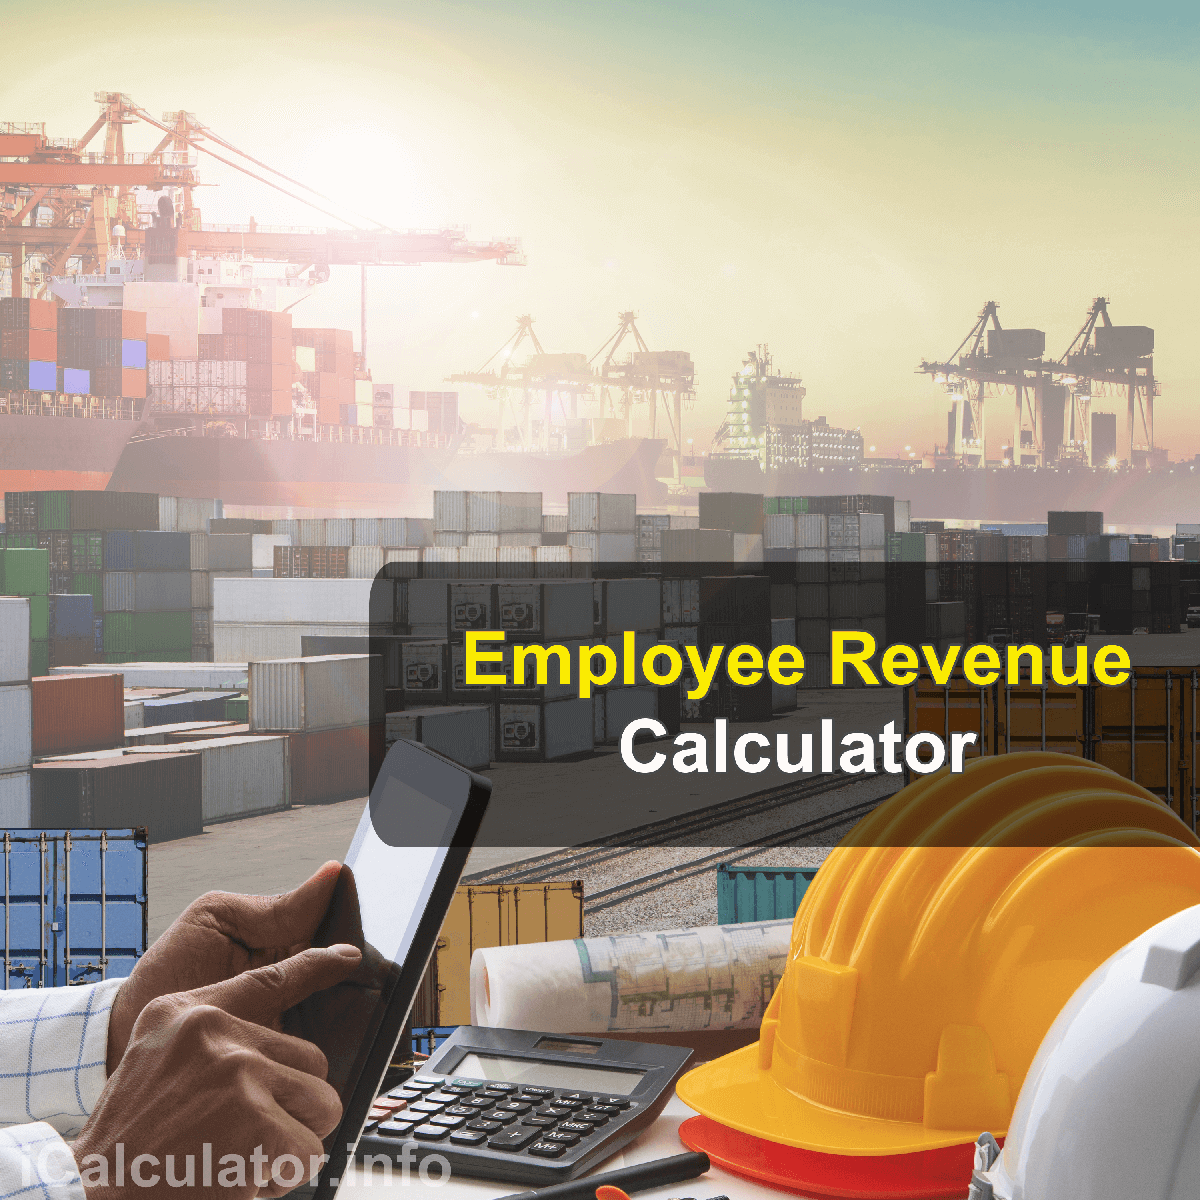 Revenue Per Employee Calculator. This image provides details of how to calculate the revenue per employee using a good calculator, a pen and notepad. By using the revenue per employee formula, the Revenue Per Employee Calculator provides a true calculation of how much each employee contributes to the profit and tunrover of a business as an even split per person contribution.